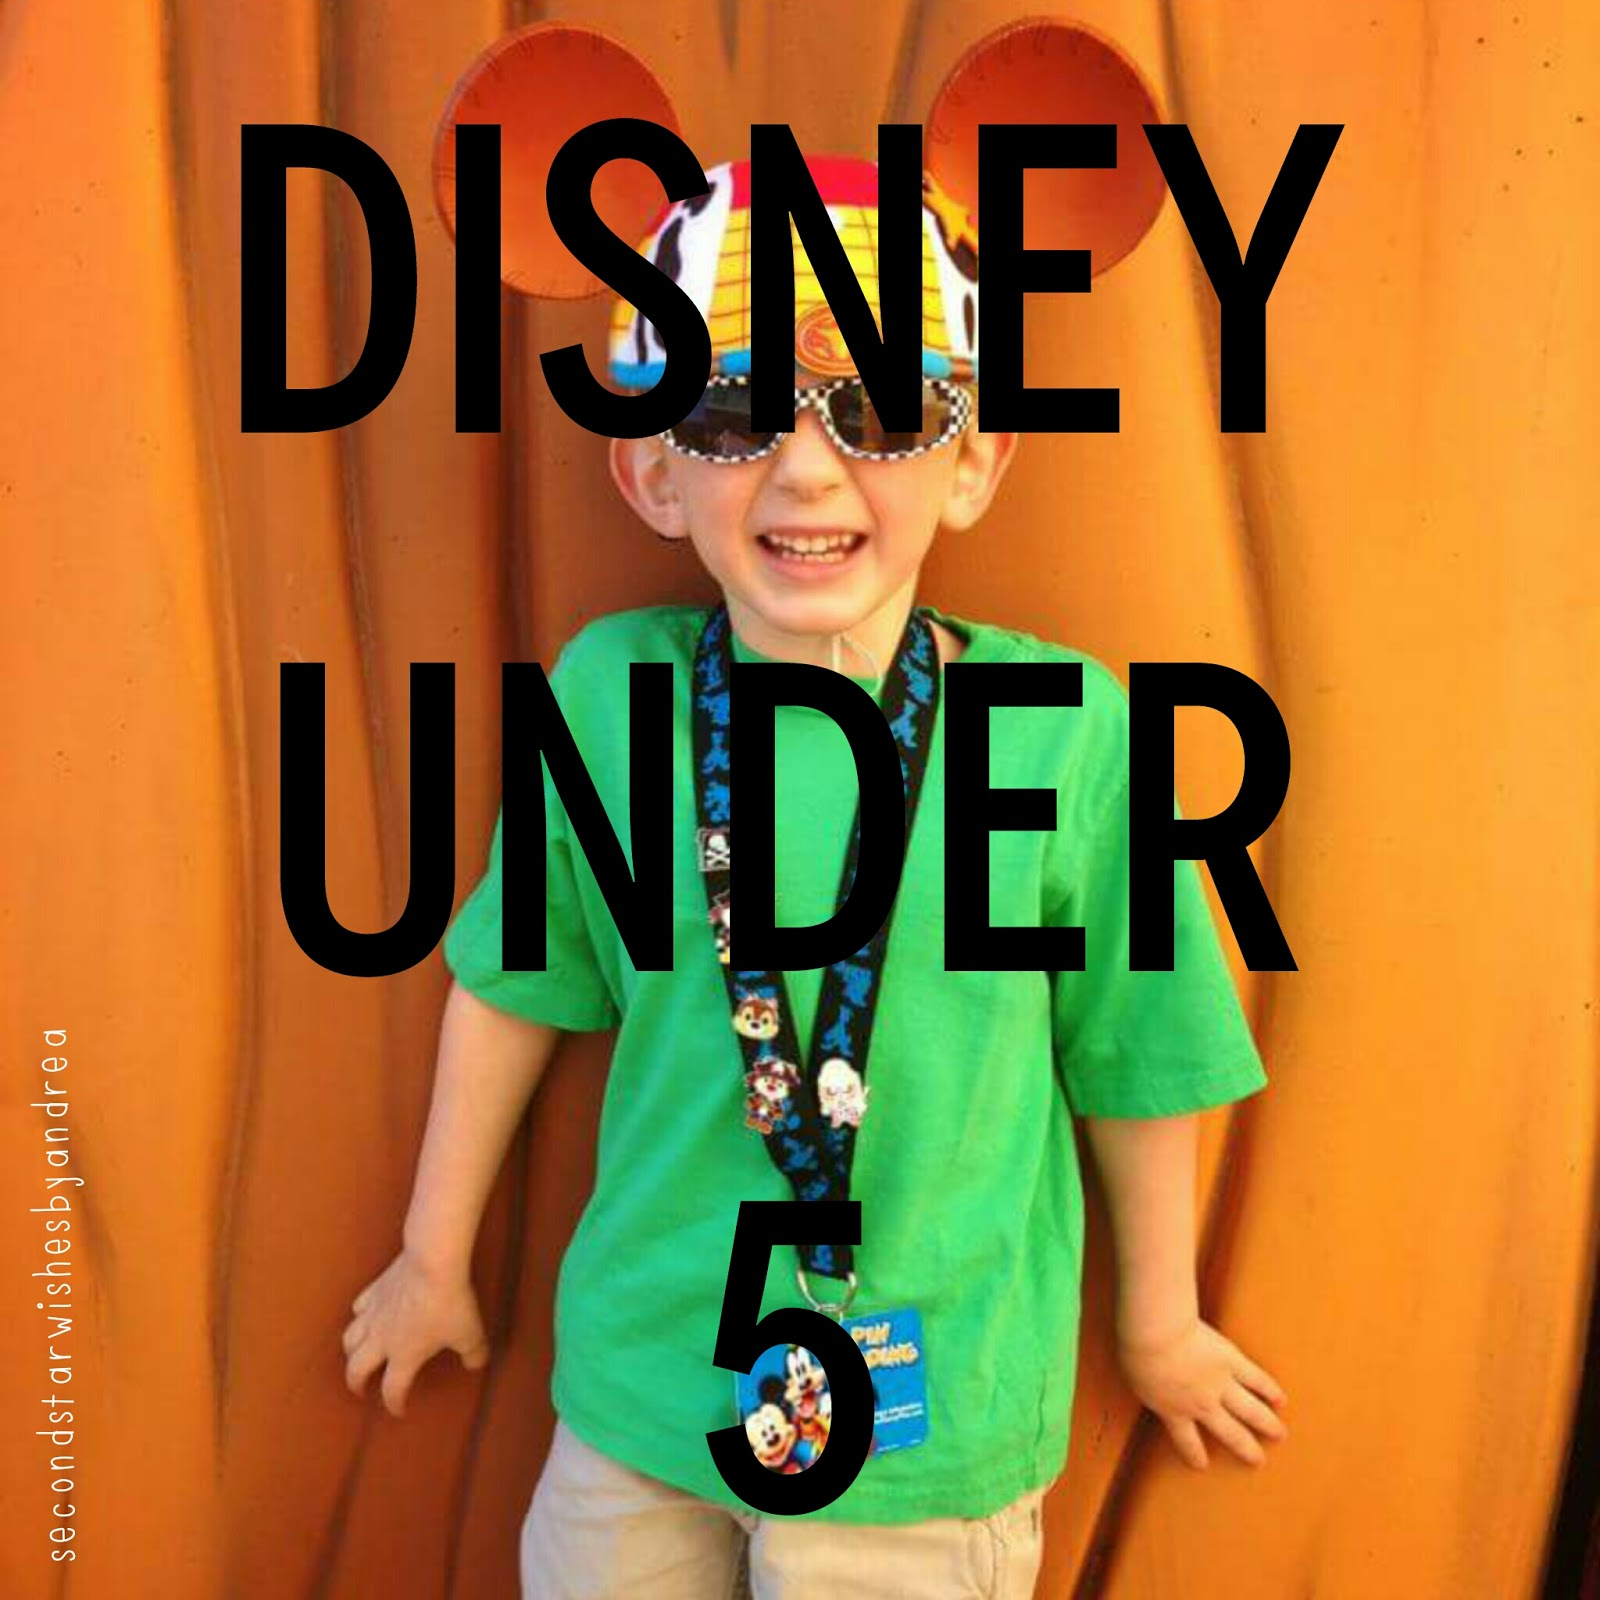 Disney Under 5 Part III: In Park Tips & Tricks